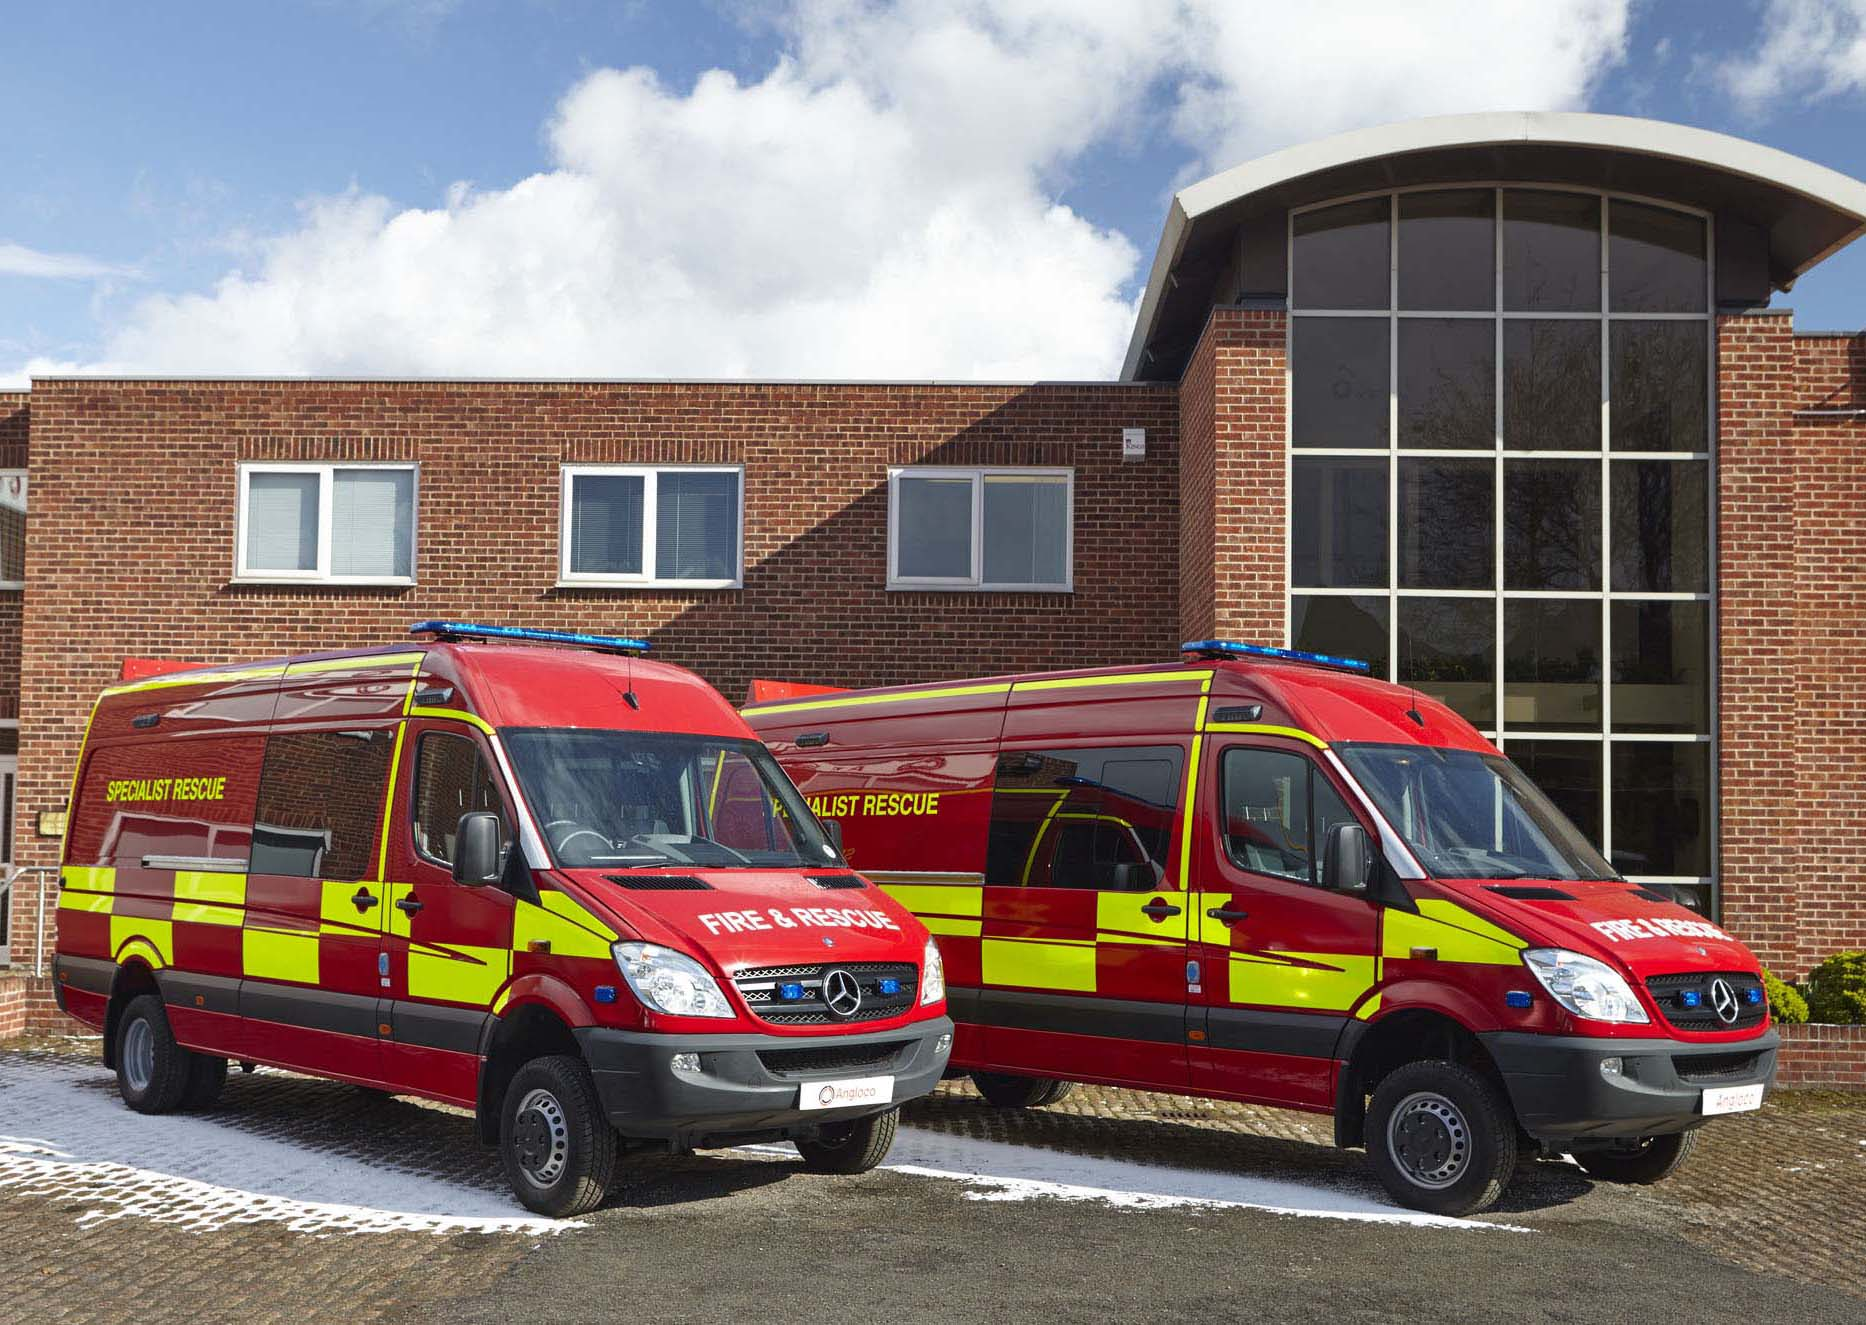 Car Sales Training >> Angloco Limited - Fire Fighting and Rescue Vehicles and Equipment - Design, Manufacture and ...